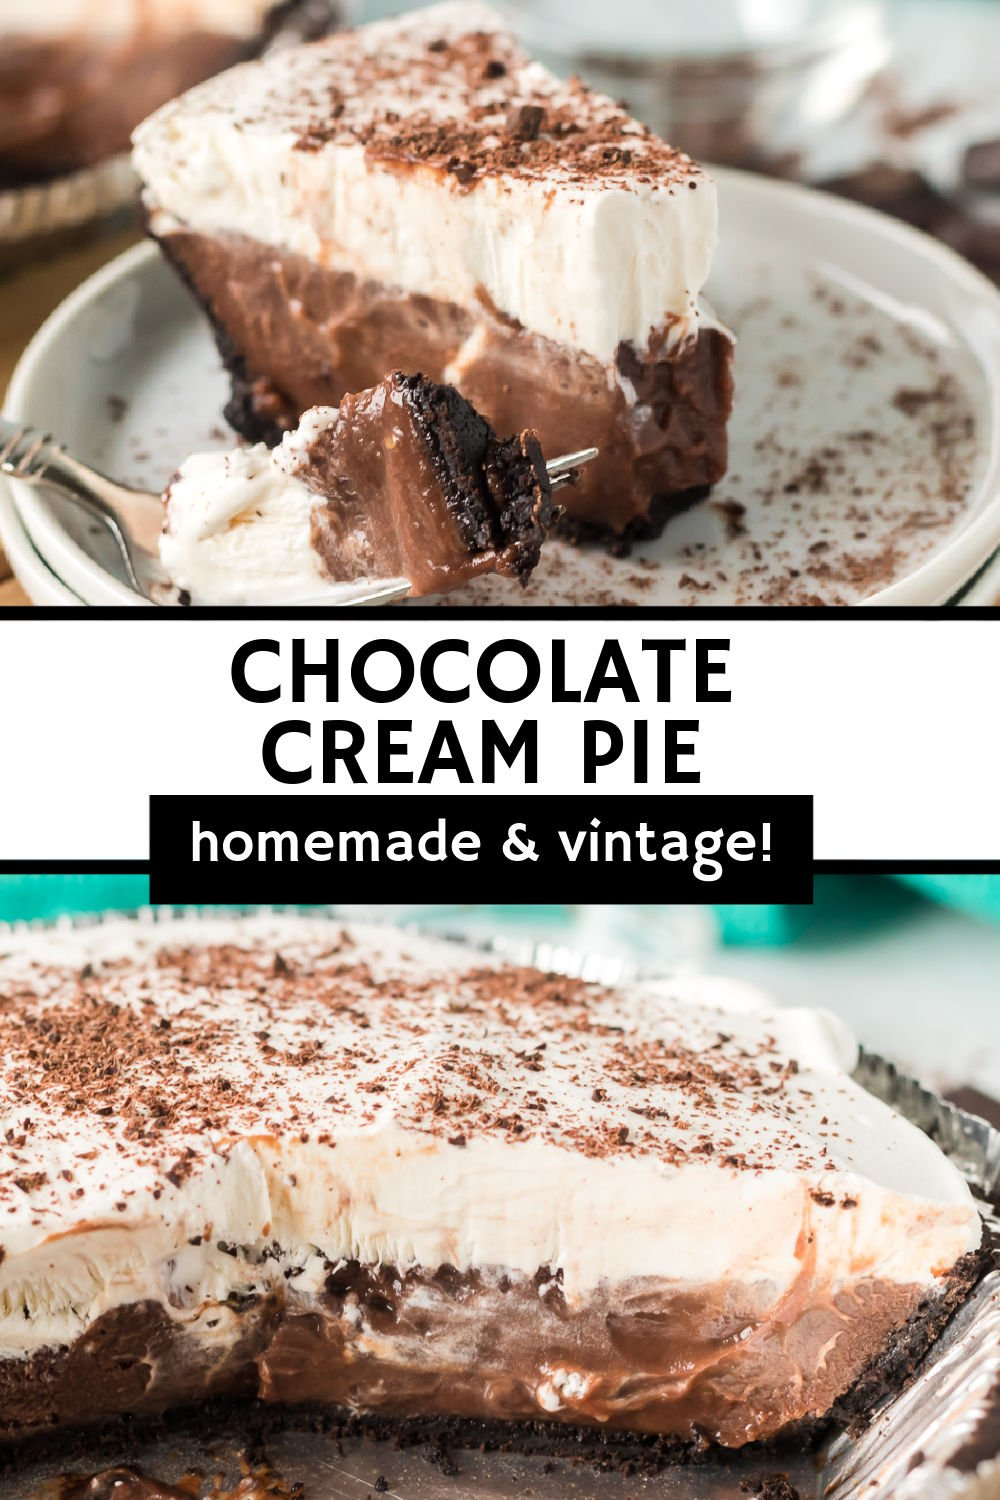 Easy Chocolate Cream Pie is a delicious, chocolatey vintage dessert sure to please the whole family! Homemade chocolate pudding topped with homemade whipped cream in an Oreo pie crust makes a cold, creamy dessert that is perfect for chocolate lovers. | www.persnicketyplates.com